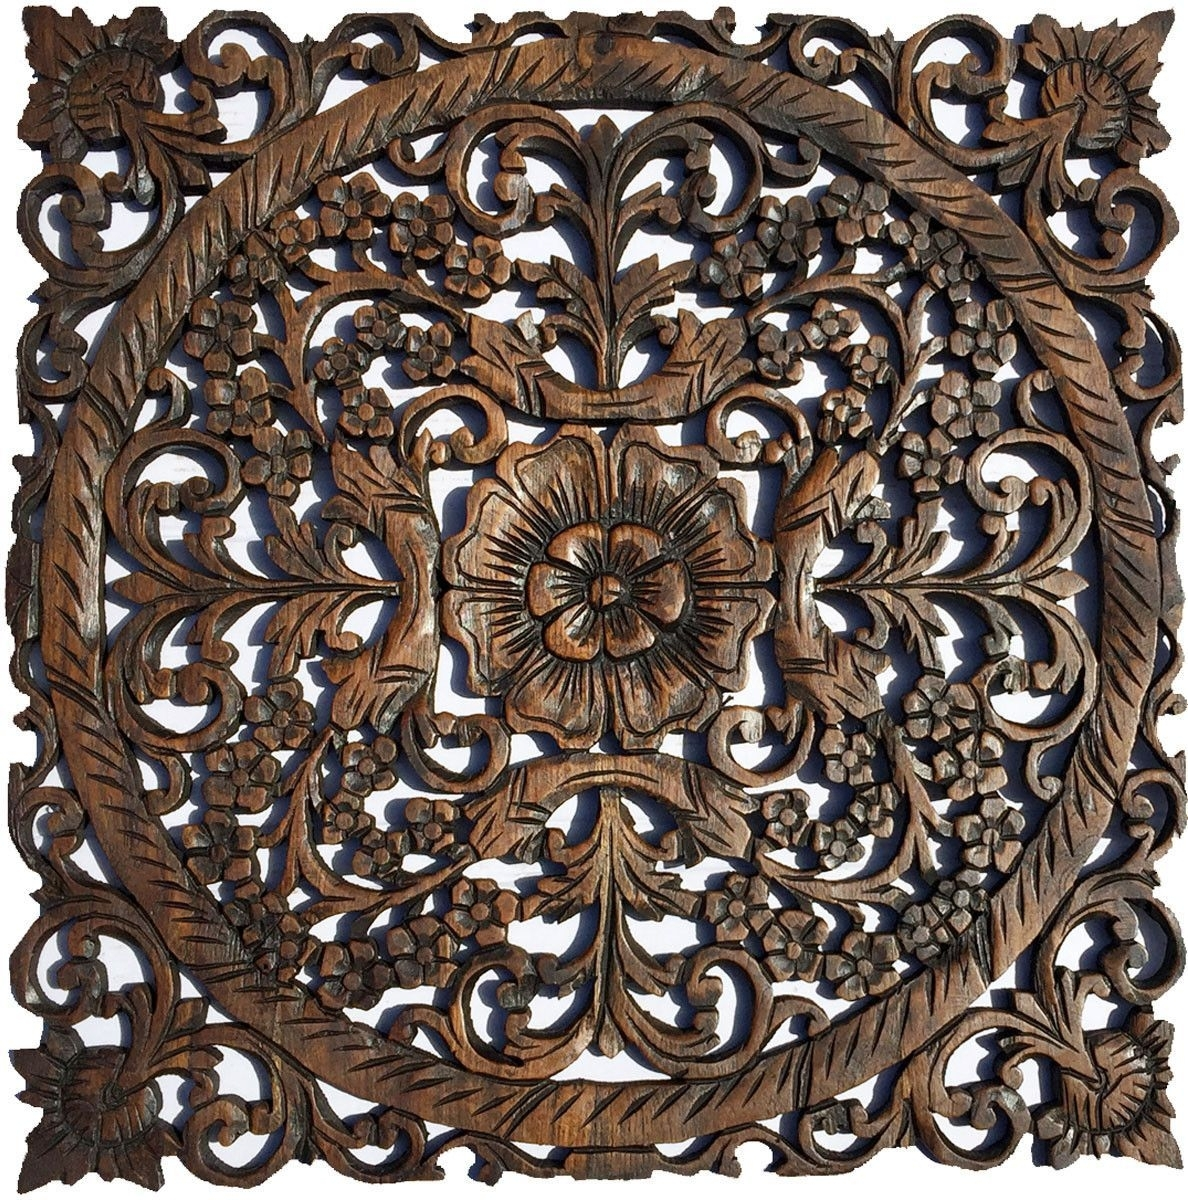 Oriental Carved Floral Wall Decor. Unique Asian Wood Wall Art (View 7 of 15)